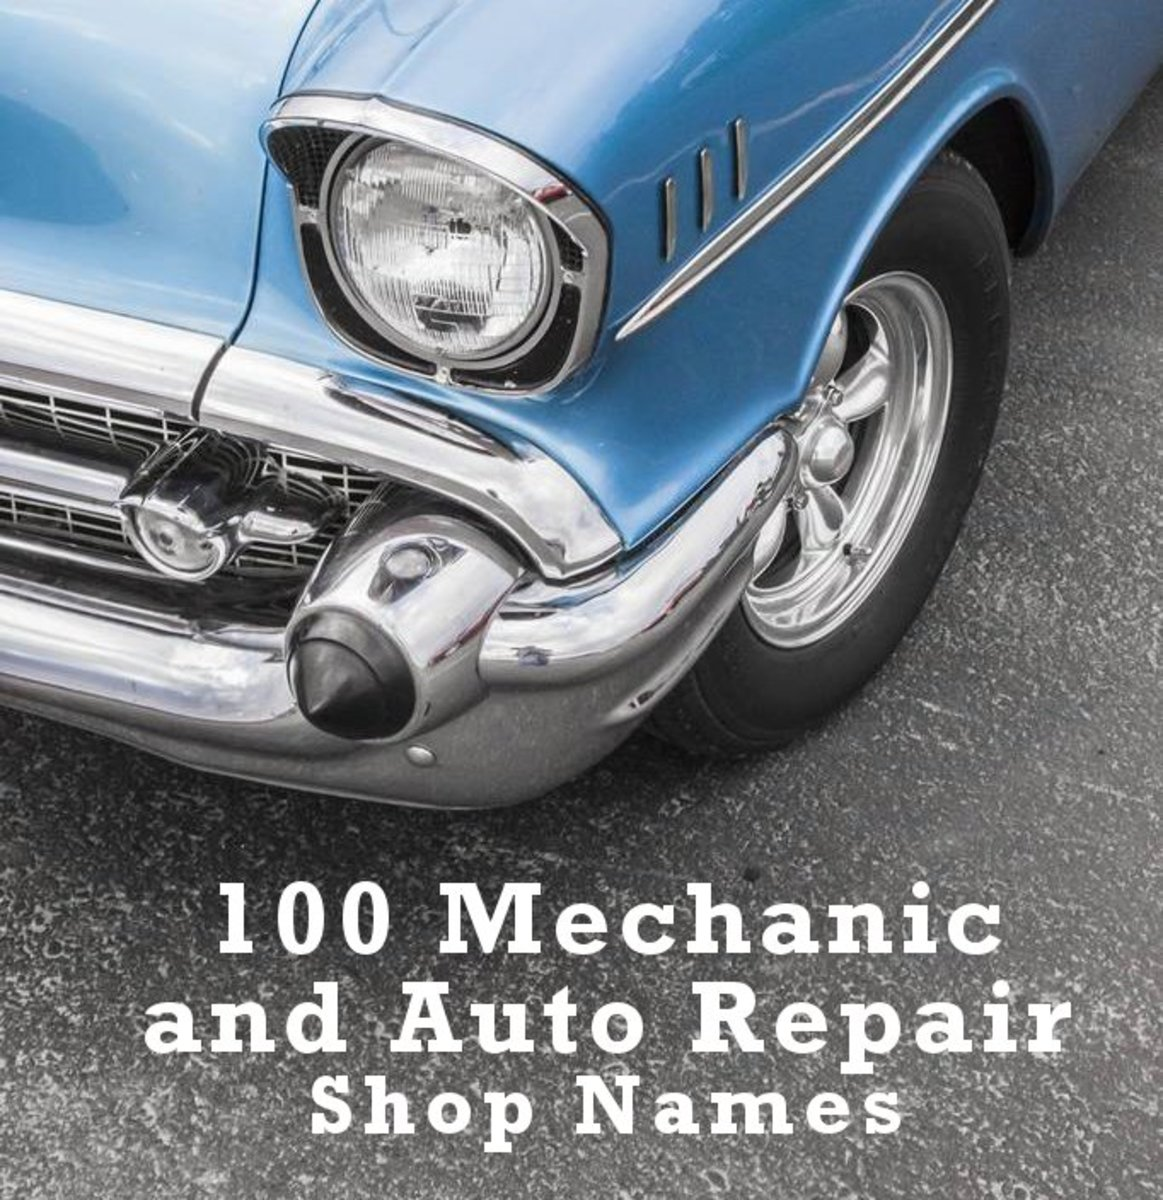 100 Mechanic and Auto Repair Shop Names | ToughNickel